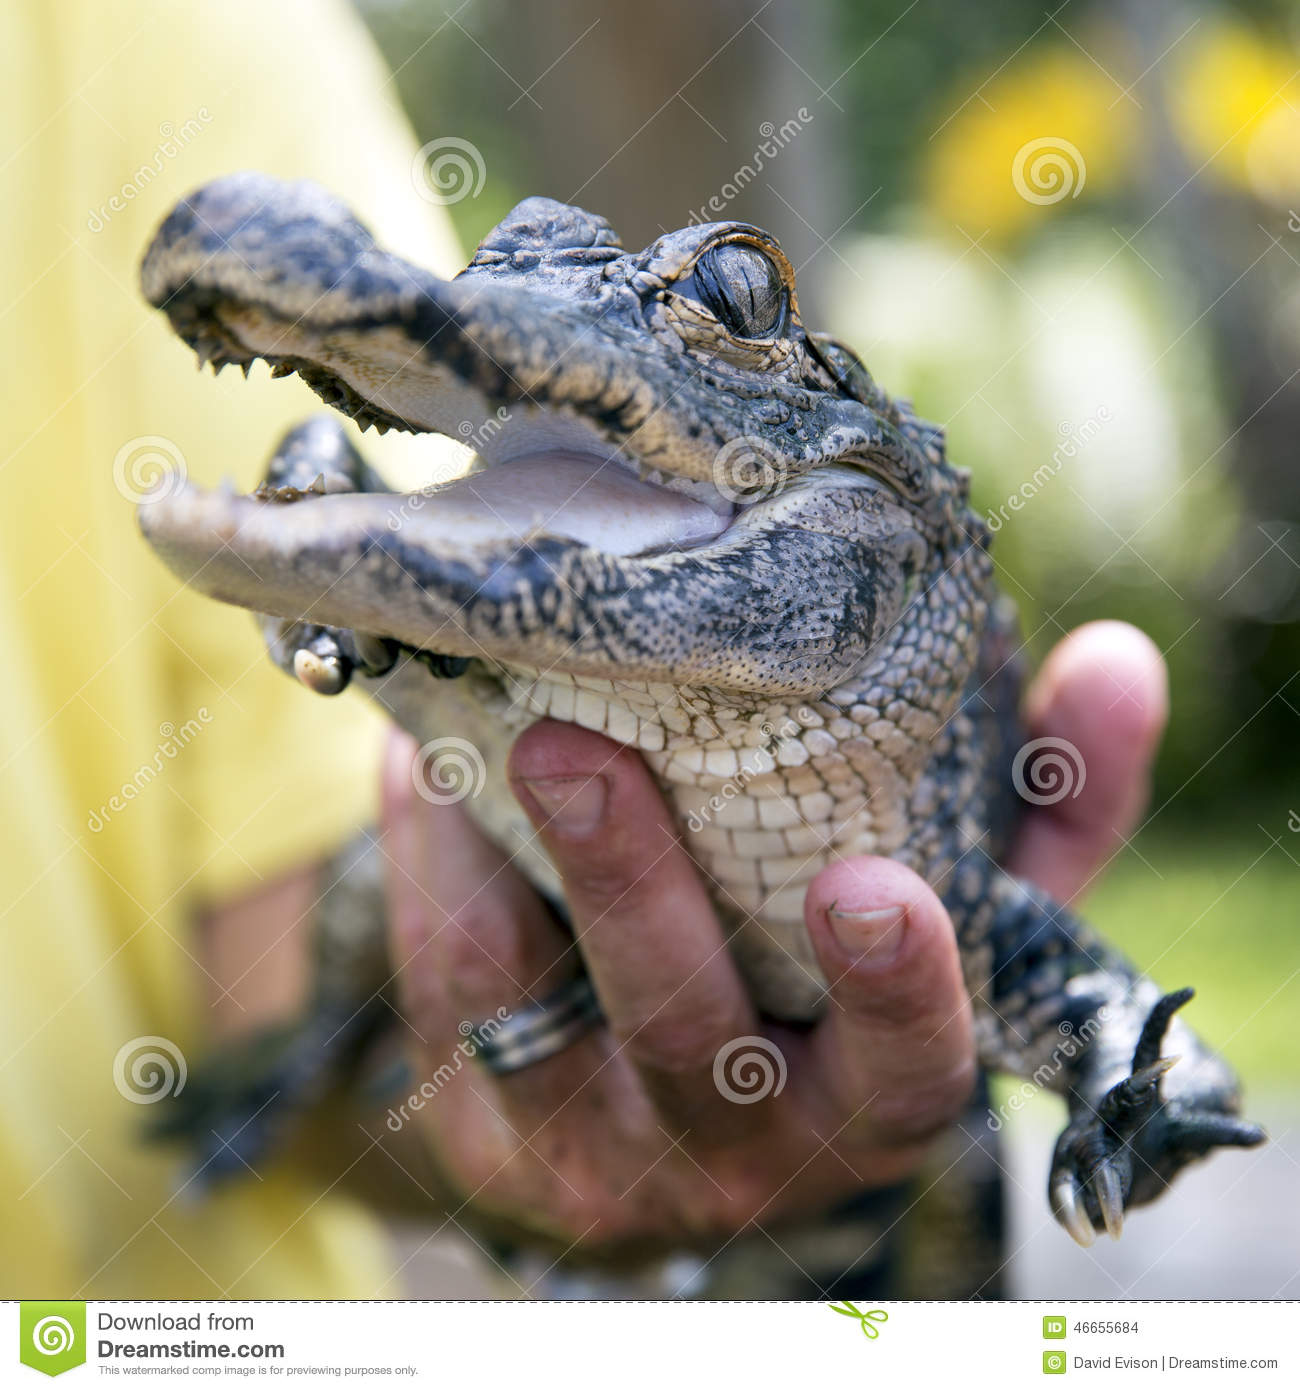 Cute Baby Alligator Stock Photo Image Of Coldblooded 46655684